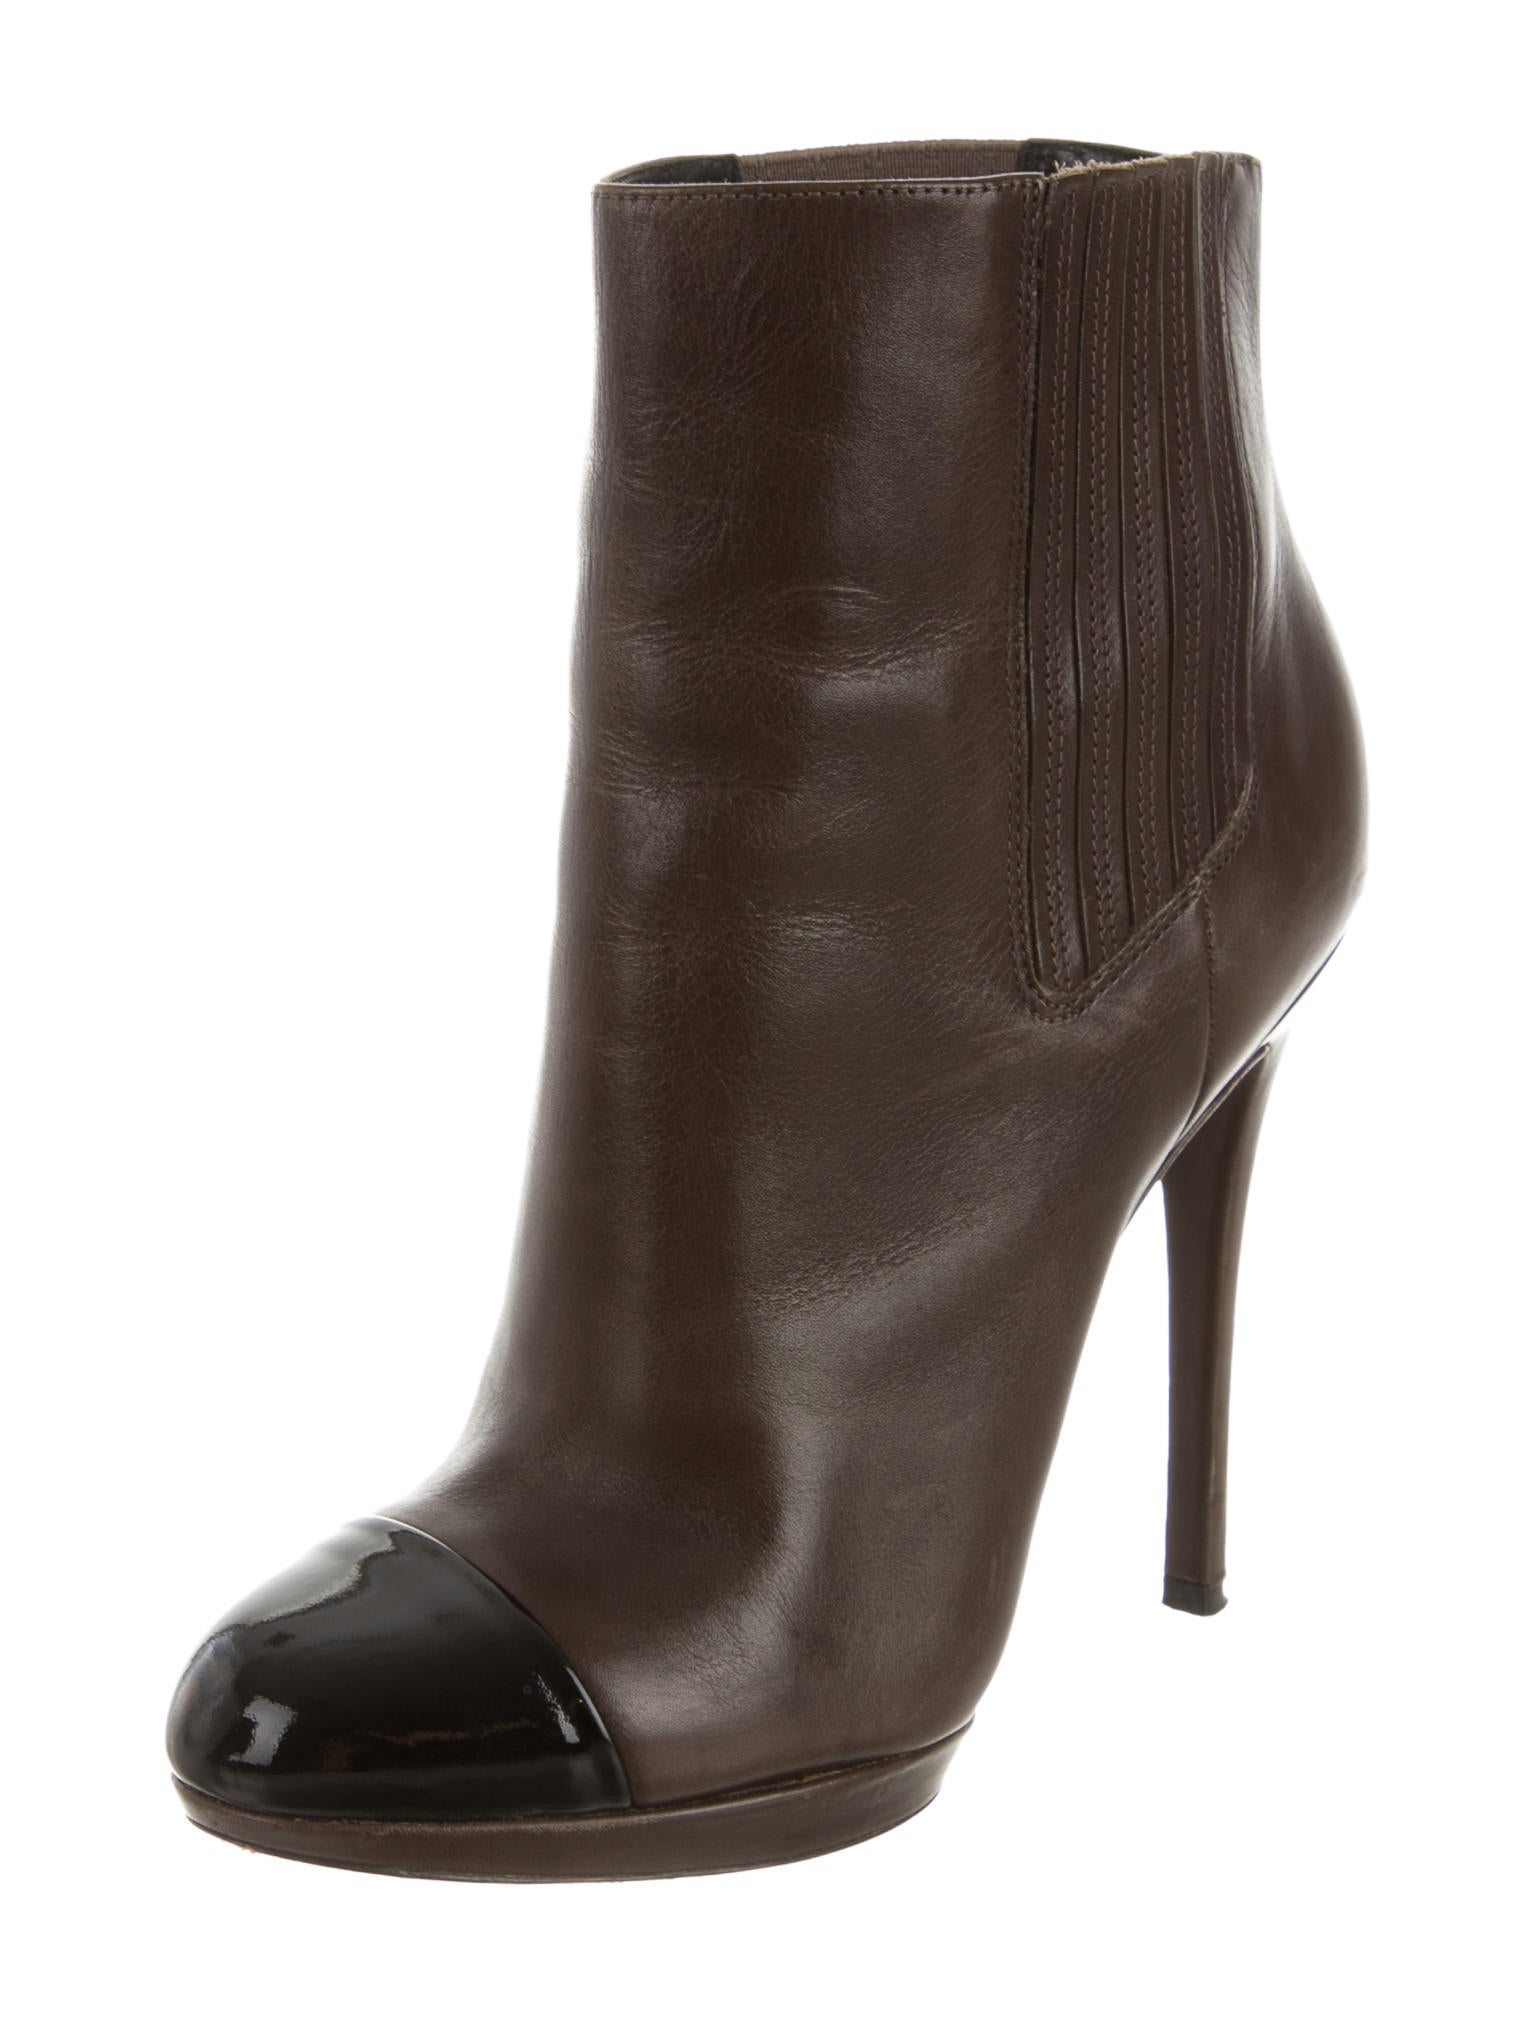 b brian atwood leather ankle boots shoes wbn21494